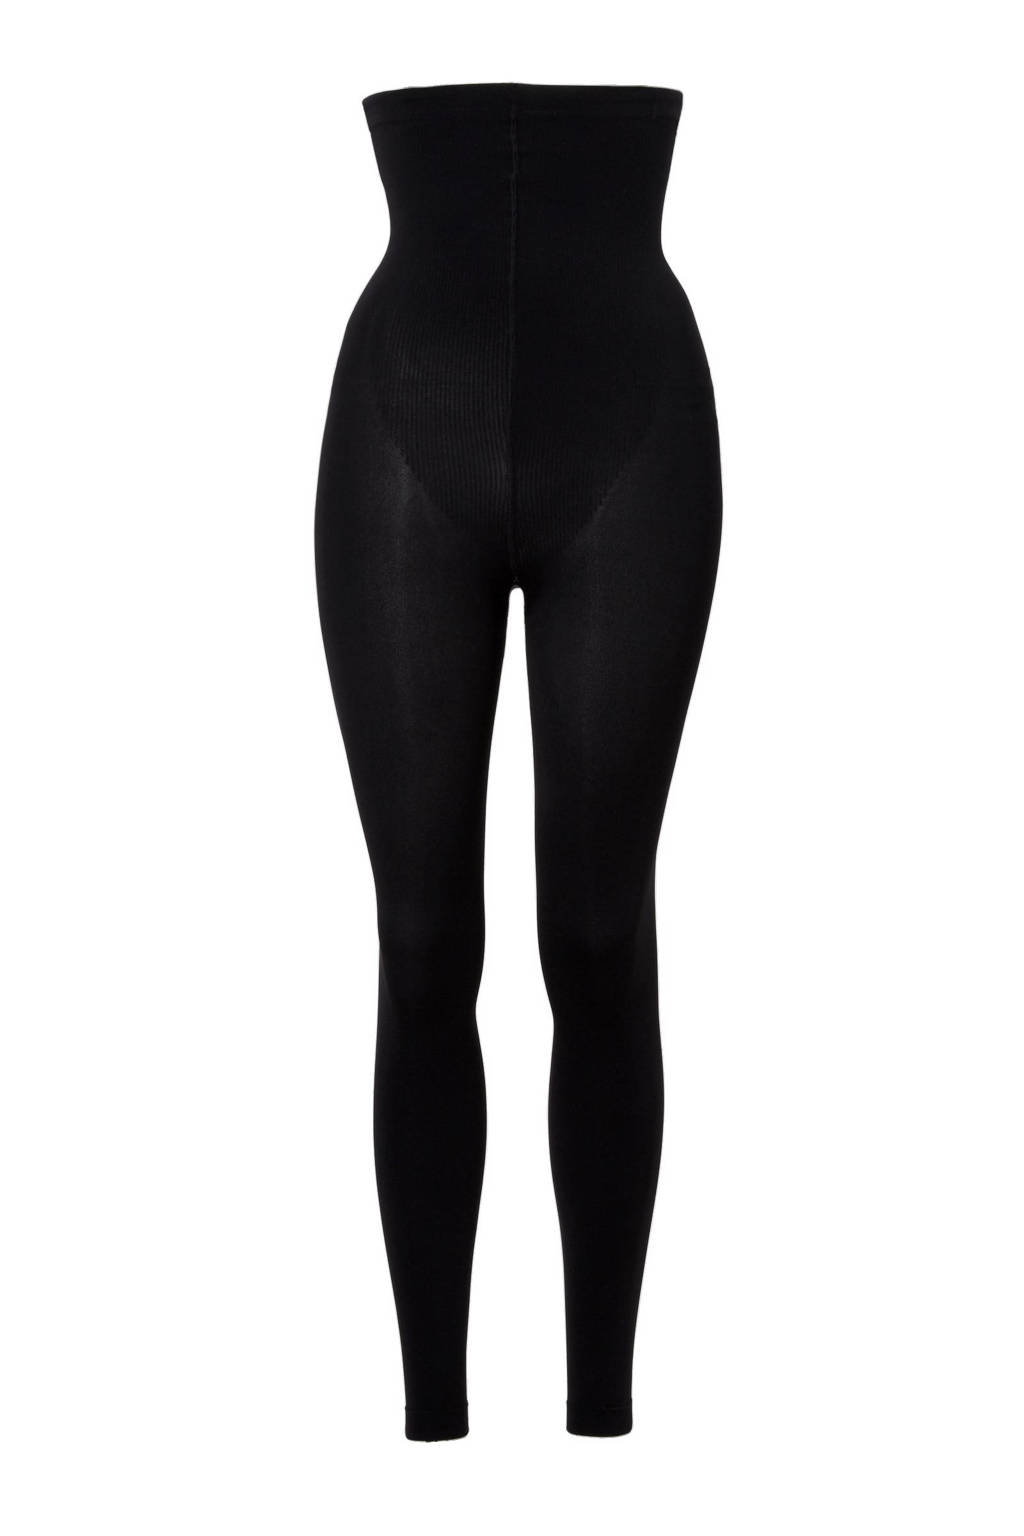 MAGIC Bodyfashion corrigerende legging zwart, Zwart